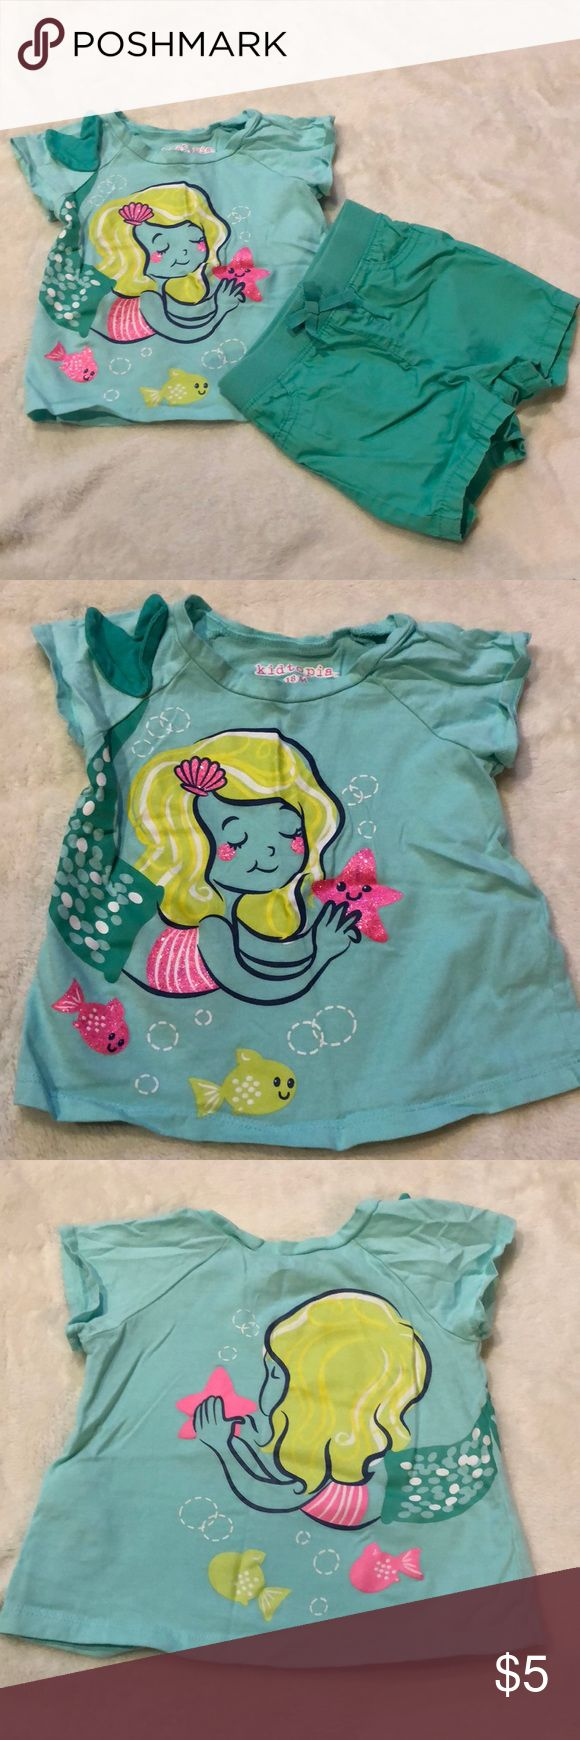 Teal shorts with mermaid top. 18mo Smoke free pet free home. Worn maybe one time. Matching Sets